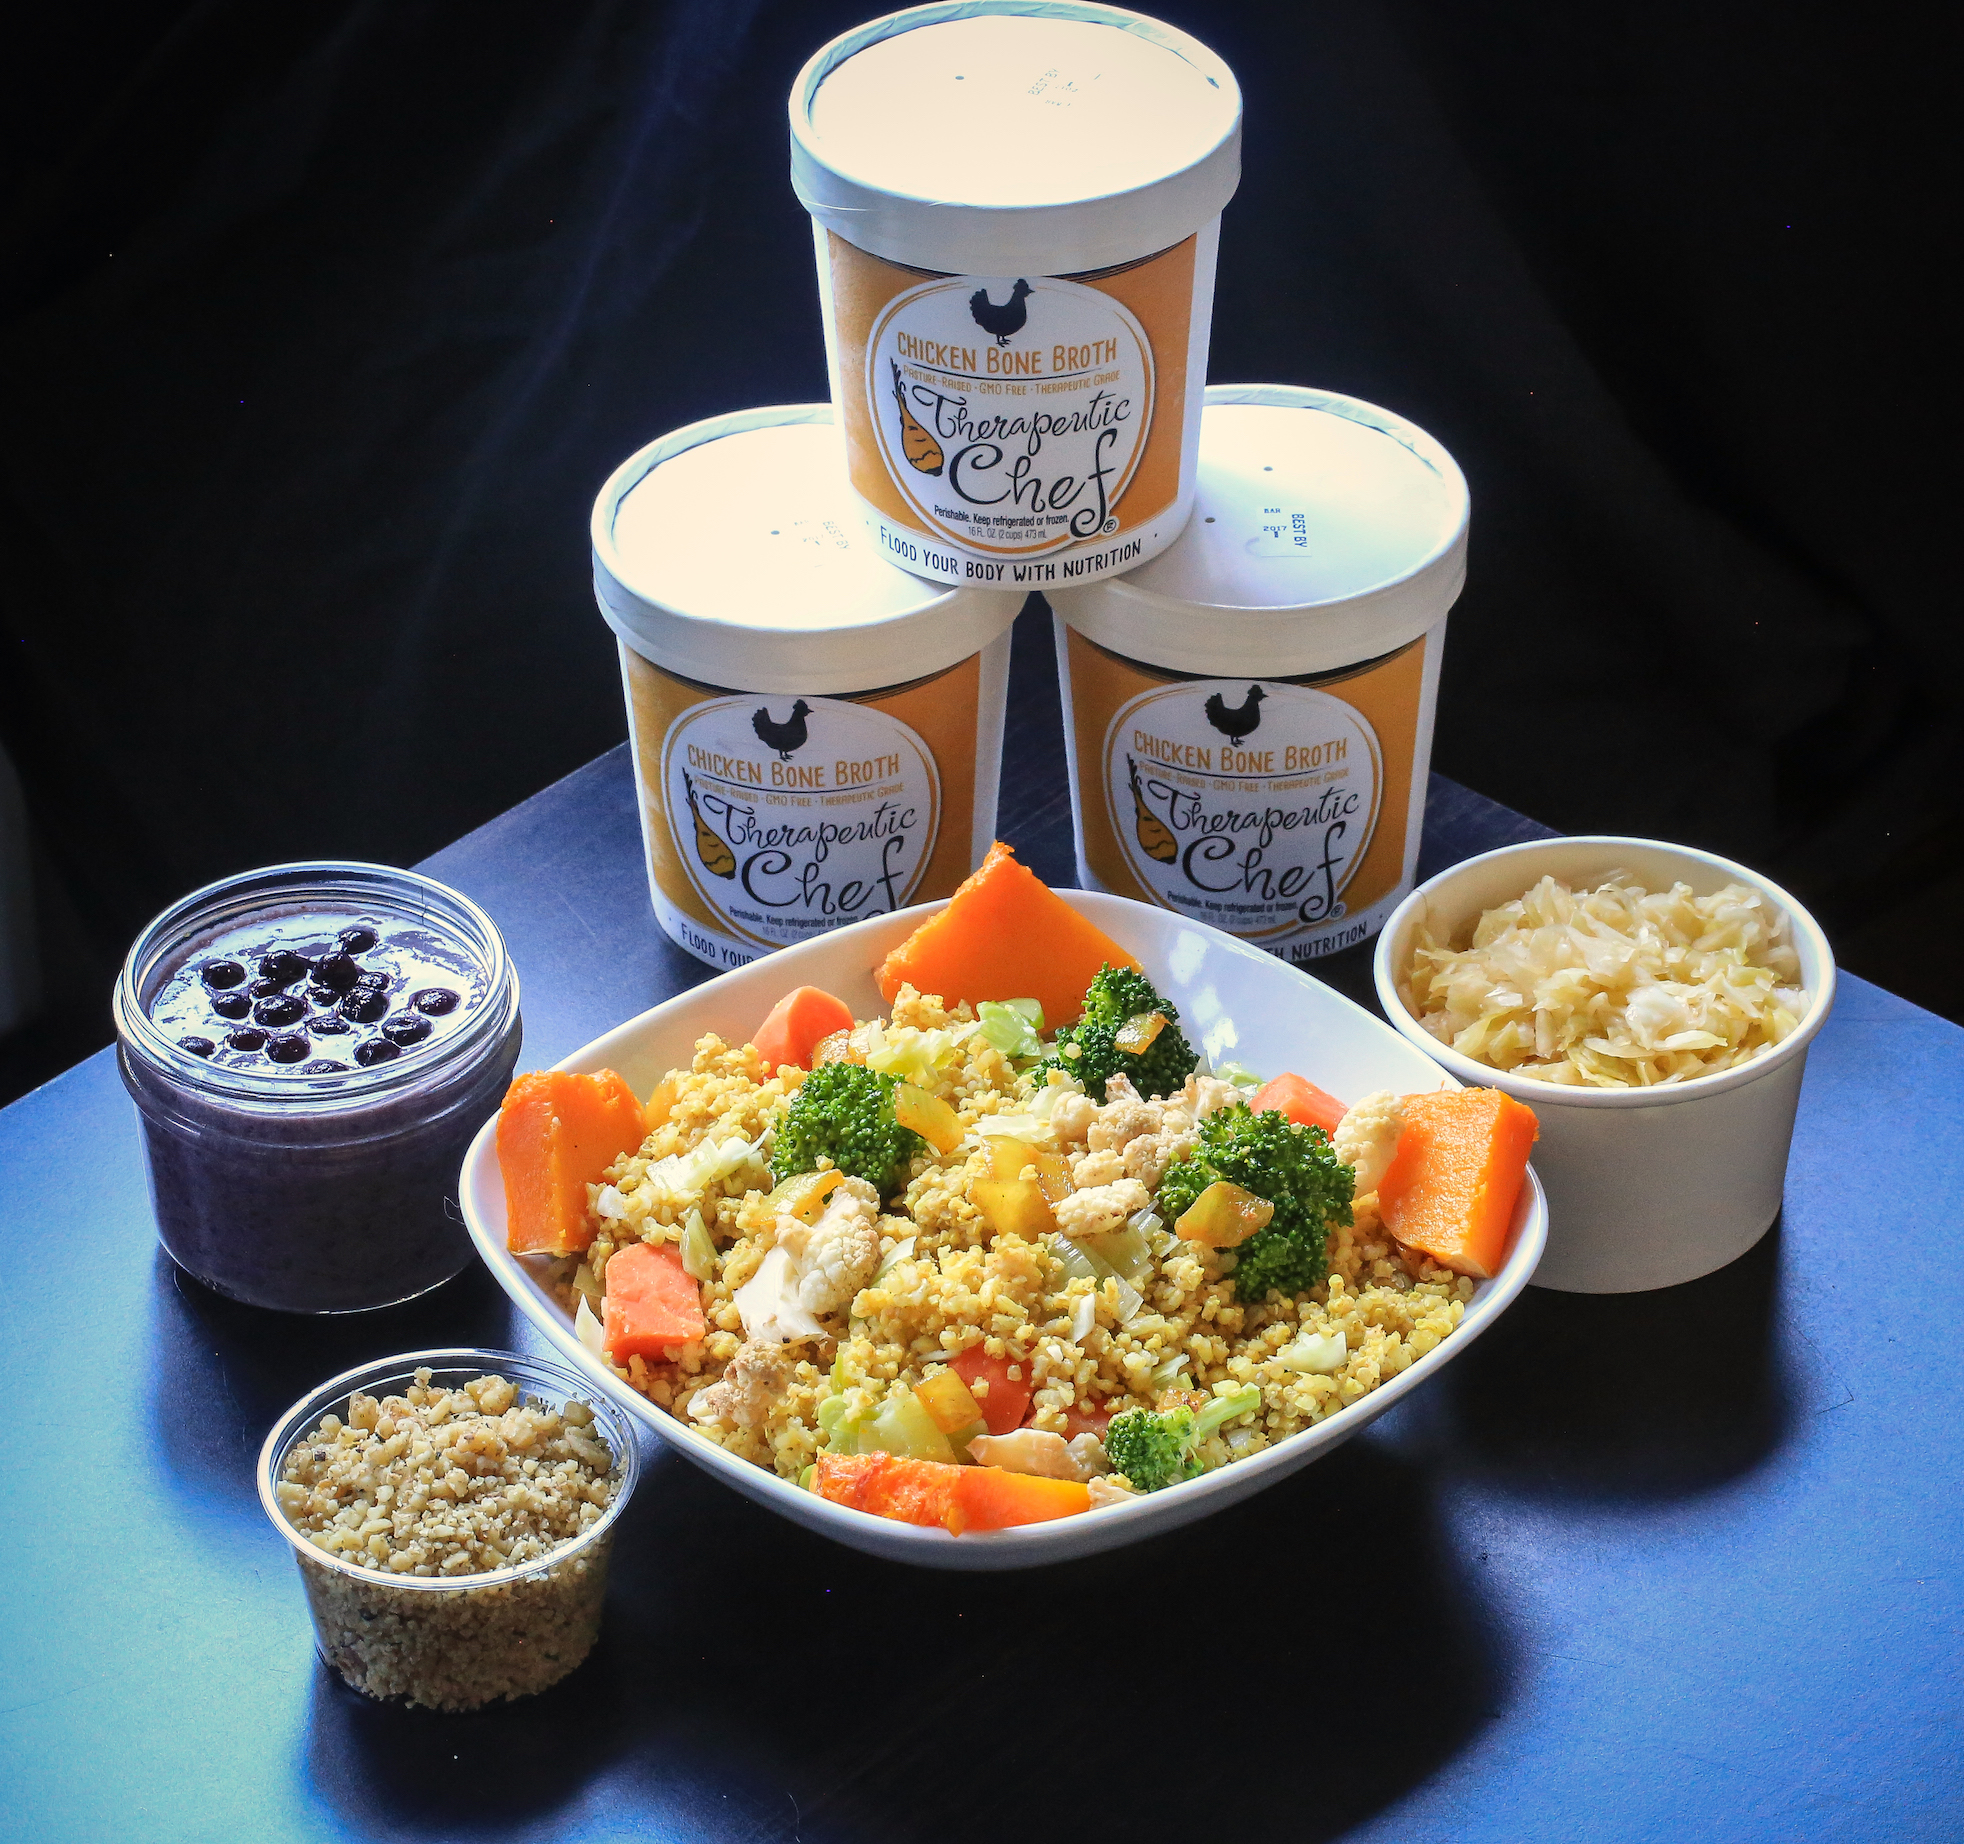 """Example of  some  of the items you will receive when you purchase your 3 day cleanse. From left to right: Blueberry Chia Pudding, Walnut-Hemp """"Cheese,"""" Quinoa Vegetable Salad, 3 containers of Chicken Bone Broth and probiotic-rich Sauerkraut."""